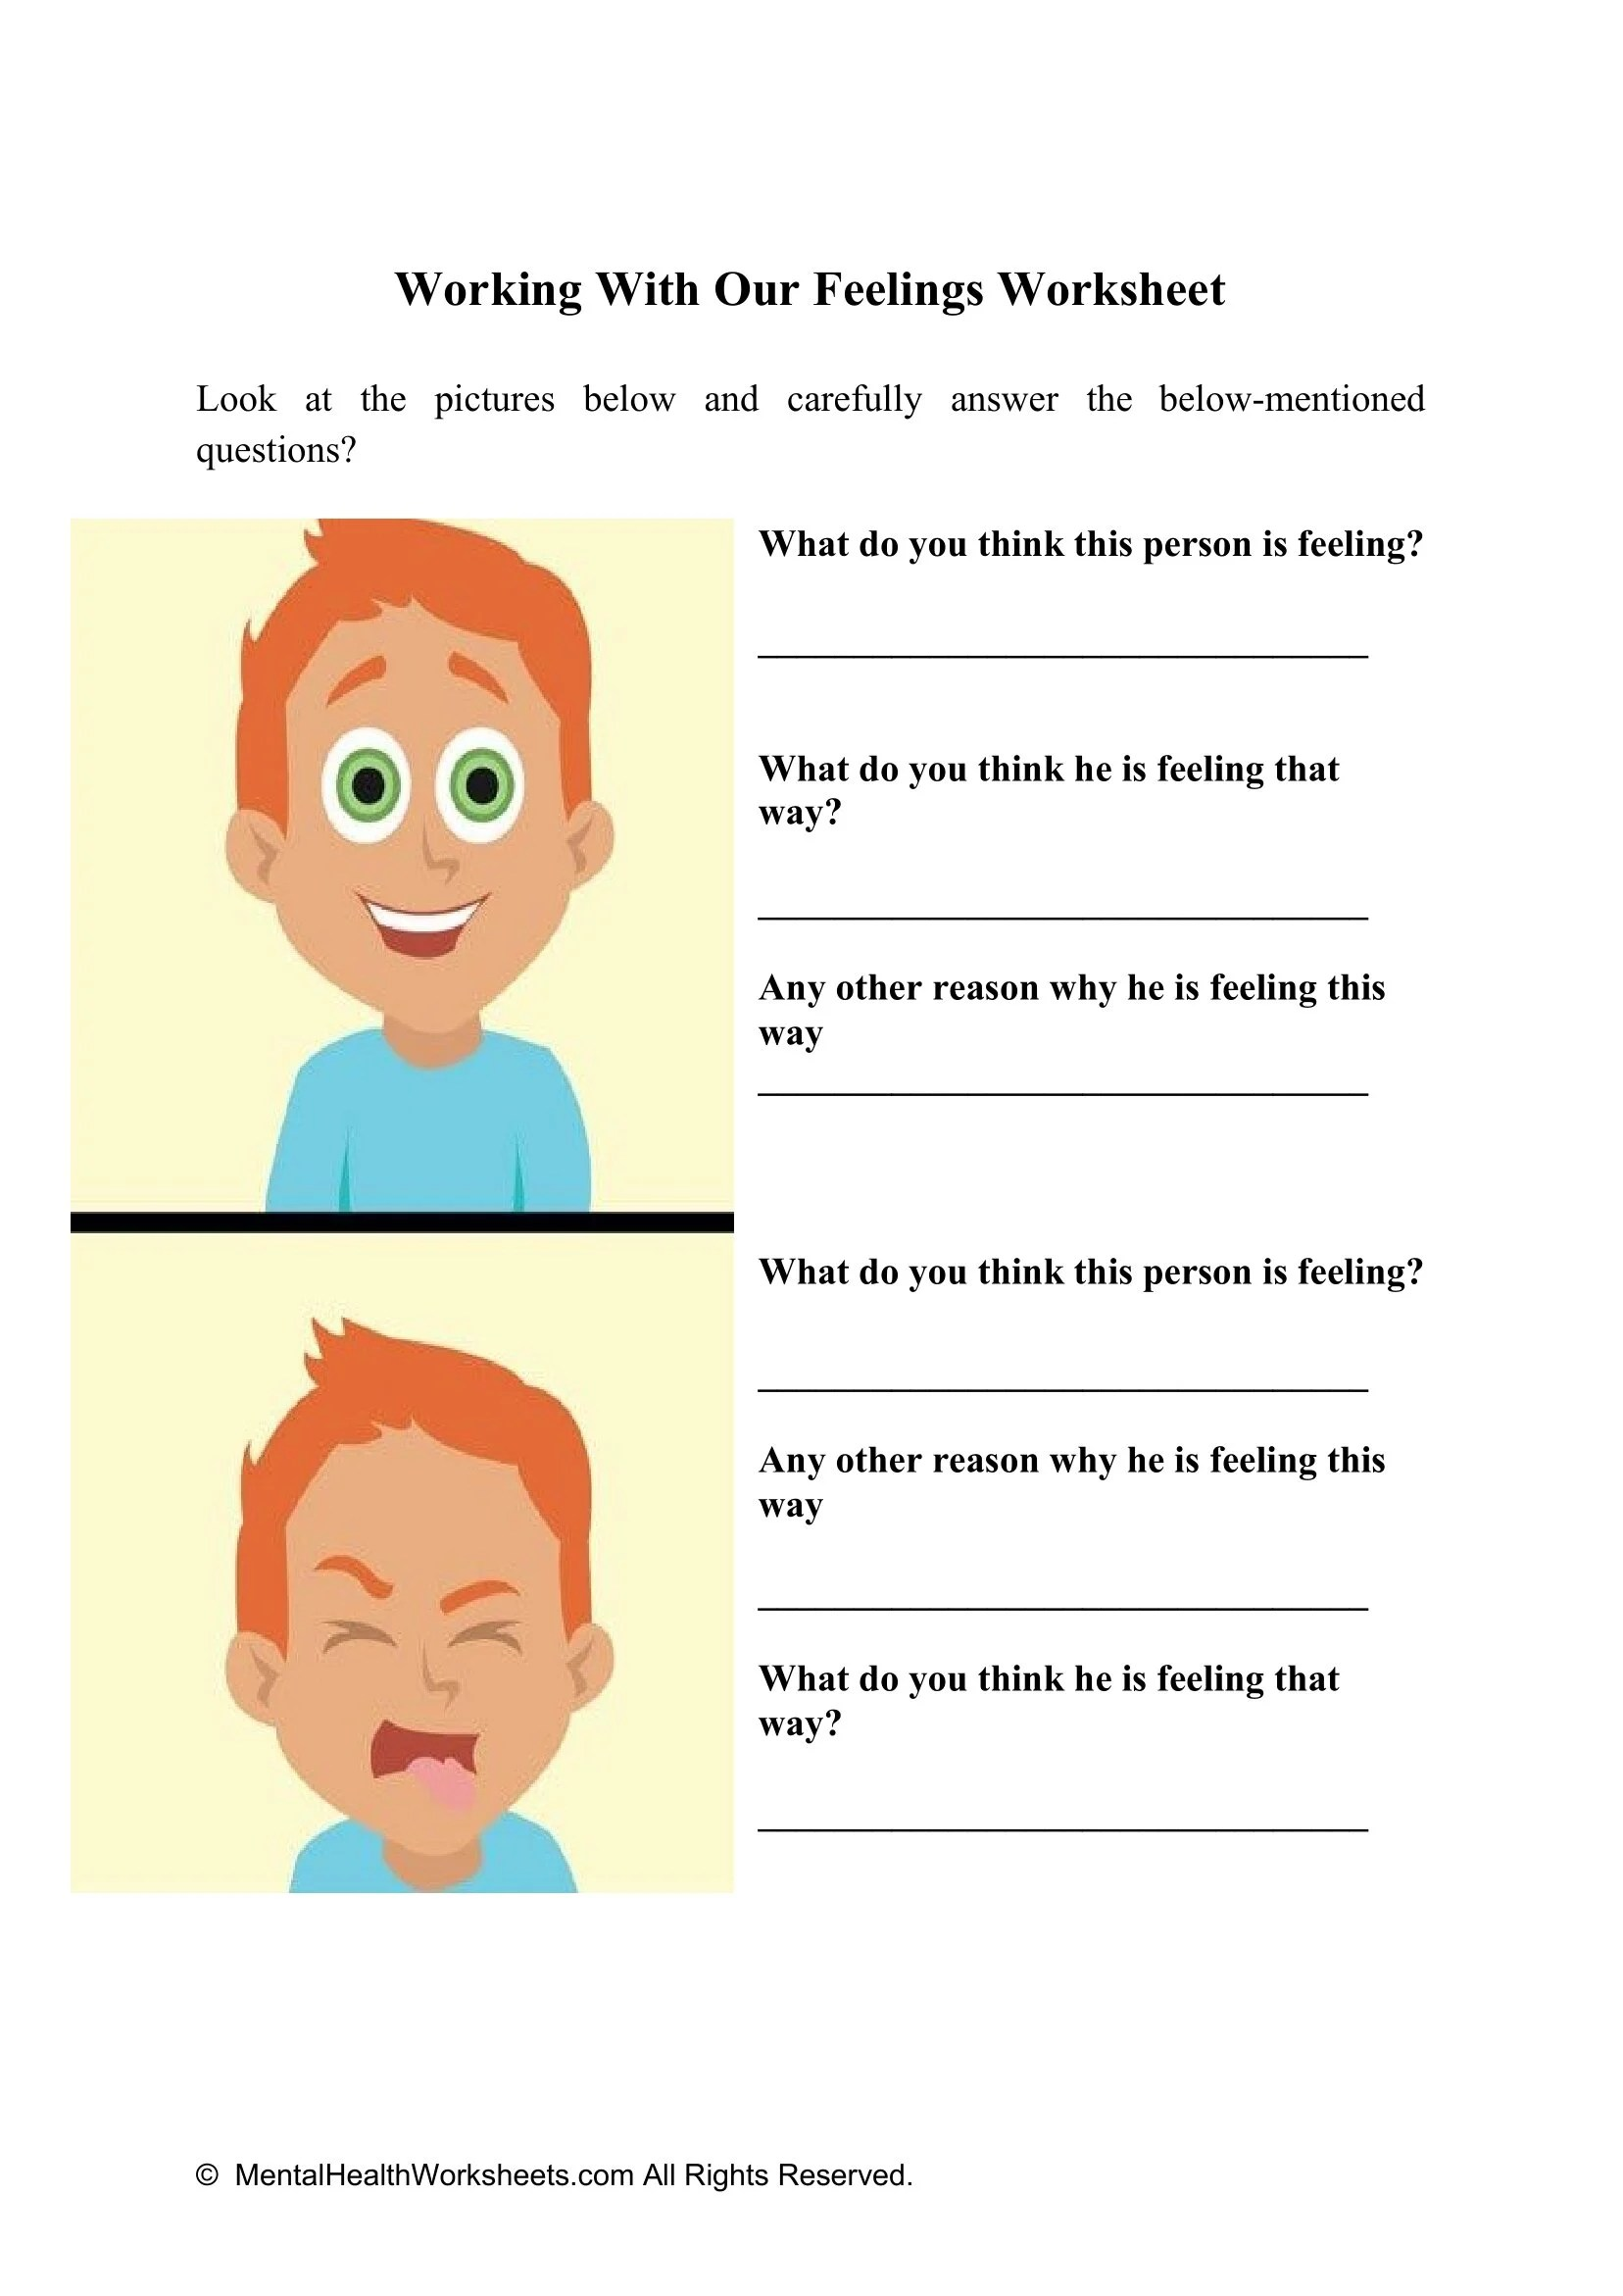 Working With Our Feelings Worksheet 2